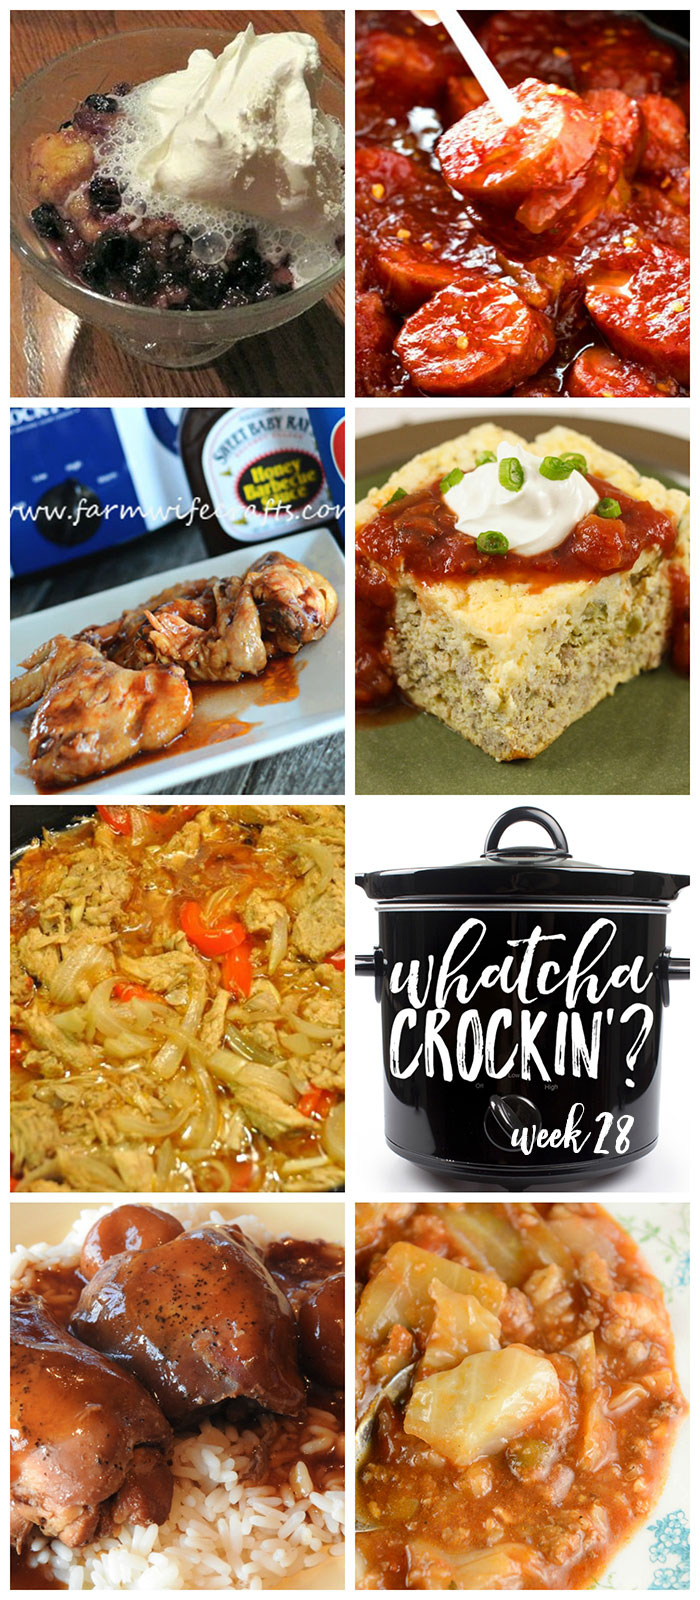 This week's Whatcha Crockin' crock pot recipes include Crockpot Sweet and Spicy Kielbasa Bites, Crock Pot Teriyaki Chicken Thighs, Crock Pot Unstuffed Cabbage Soup, Slow Cooker Santa Fe Omelet, Crock Pot Blueberry Dump Cake, Slow Cooker Honey BBQ Wings, Beer Braised Crock Pot Pork Carnitas and much more!